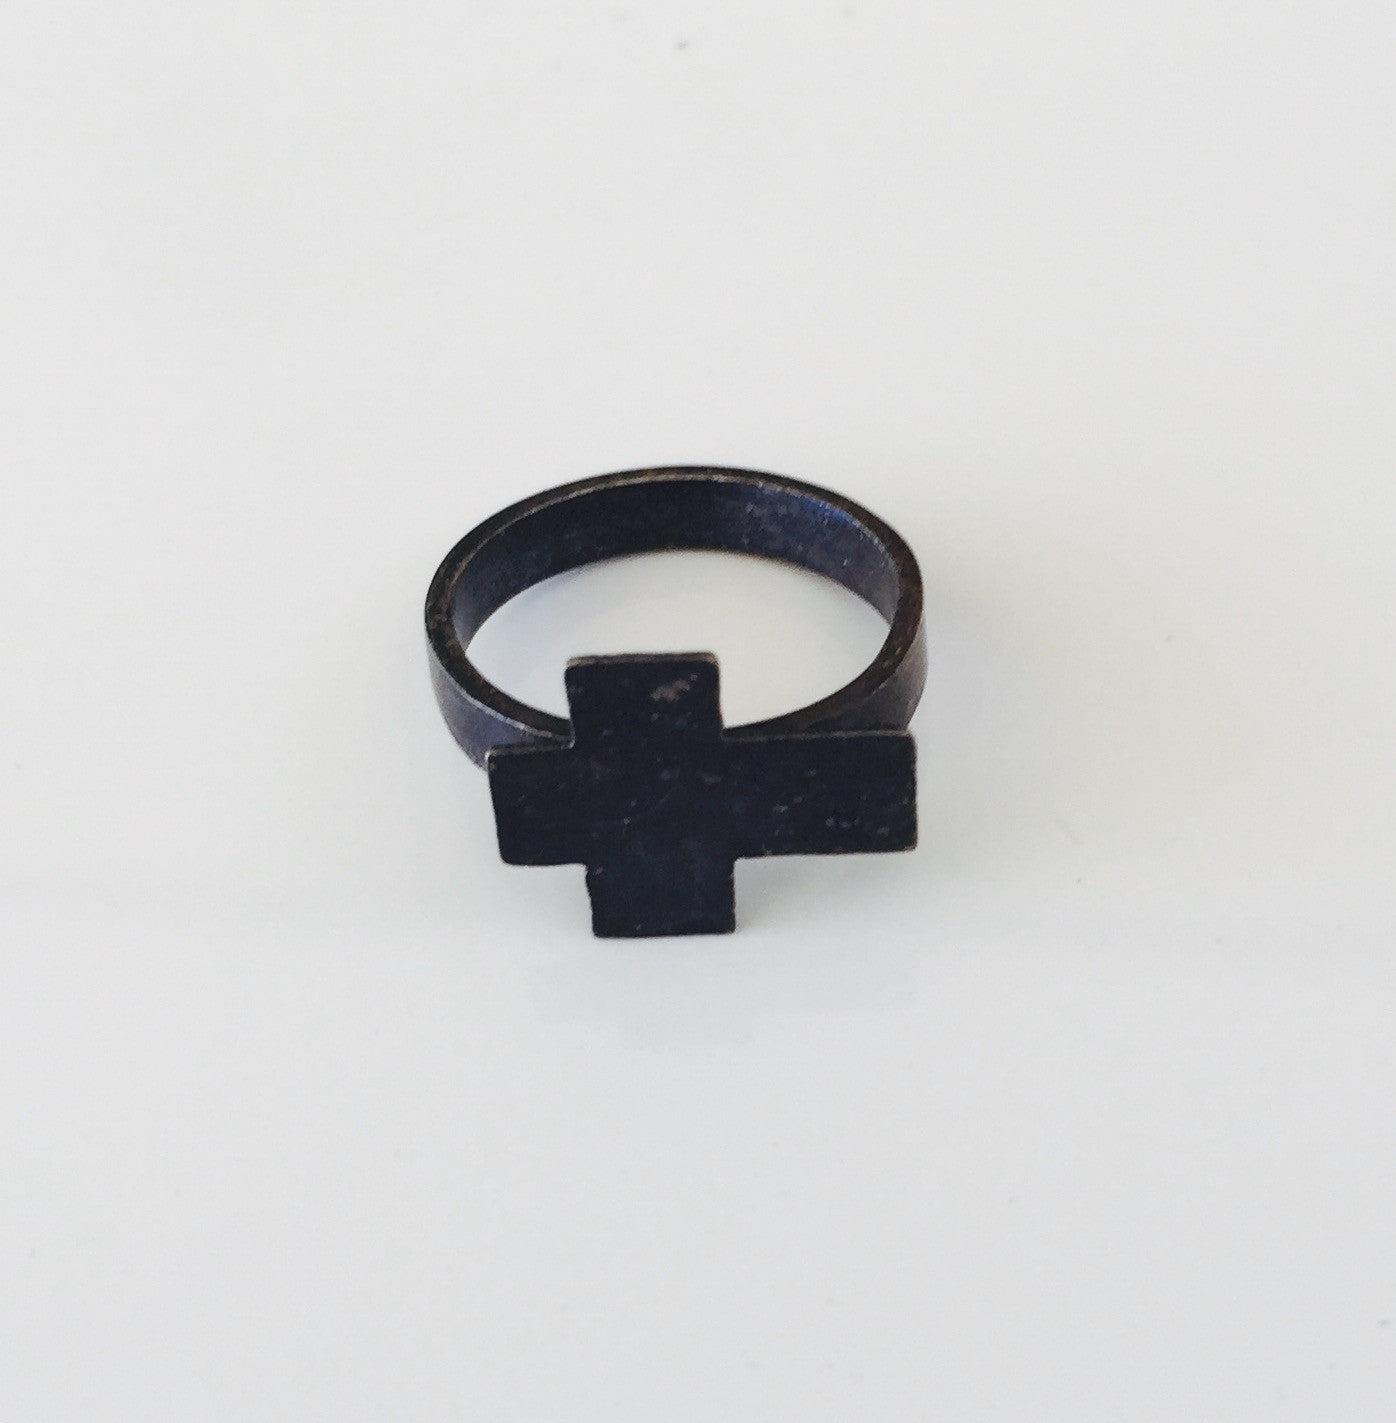 Mark and Estel X Rossmore Cross Rings- Black, Silver, or Gold